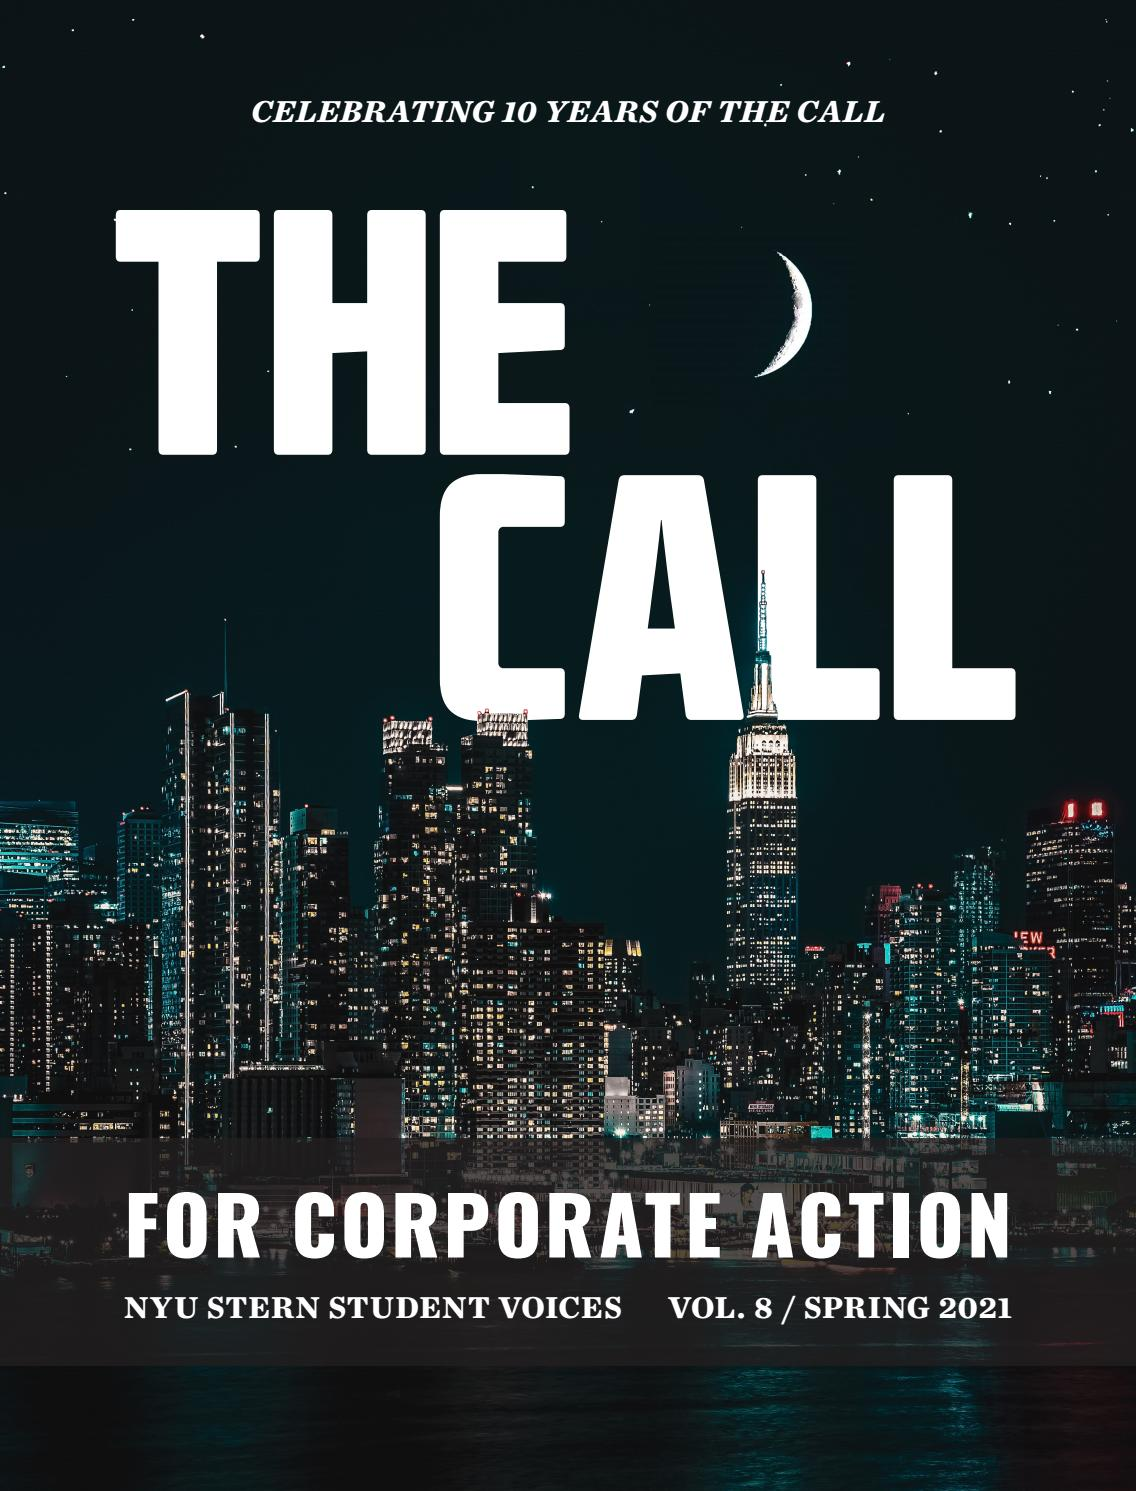 Nyu Spring 2022 Calendar.The Call For Corporate Action Nyu Stern Student Voices Vol 8 Spring 2021 By Nyu Stern School Of Business Issuu